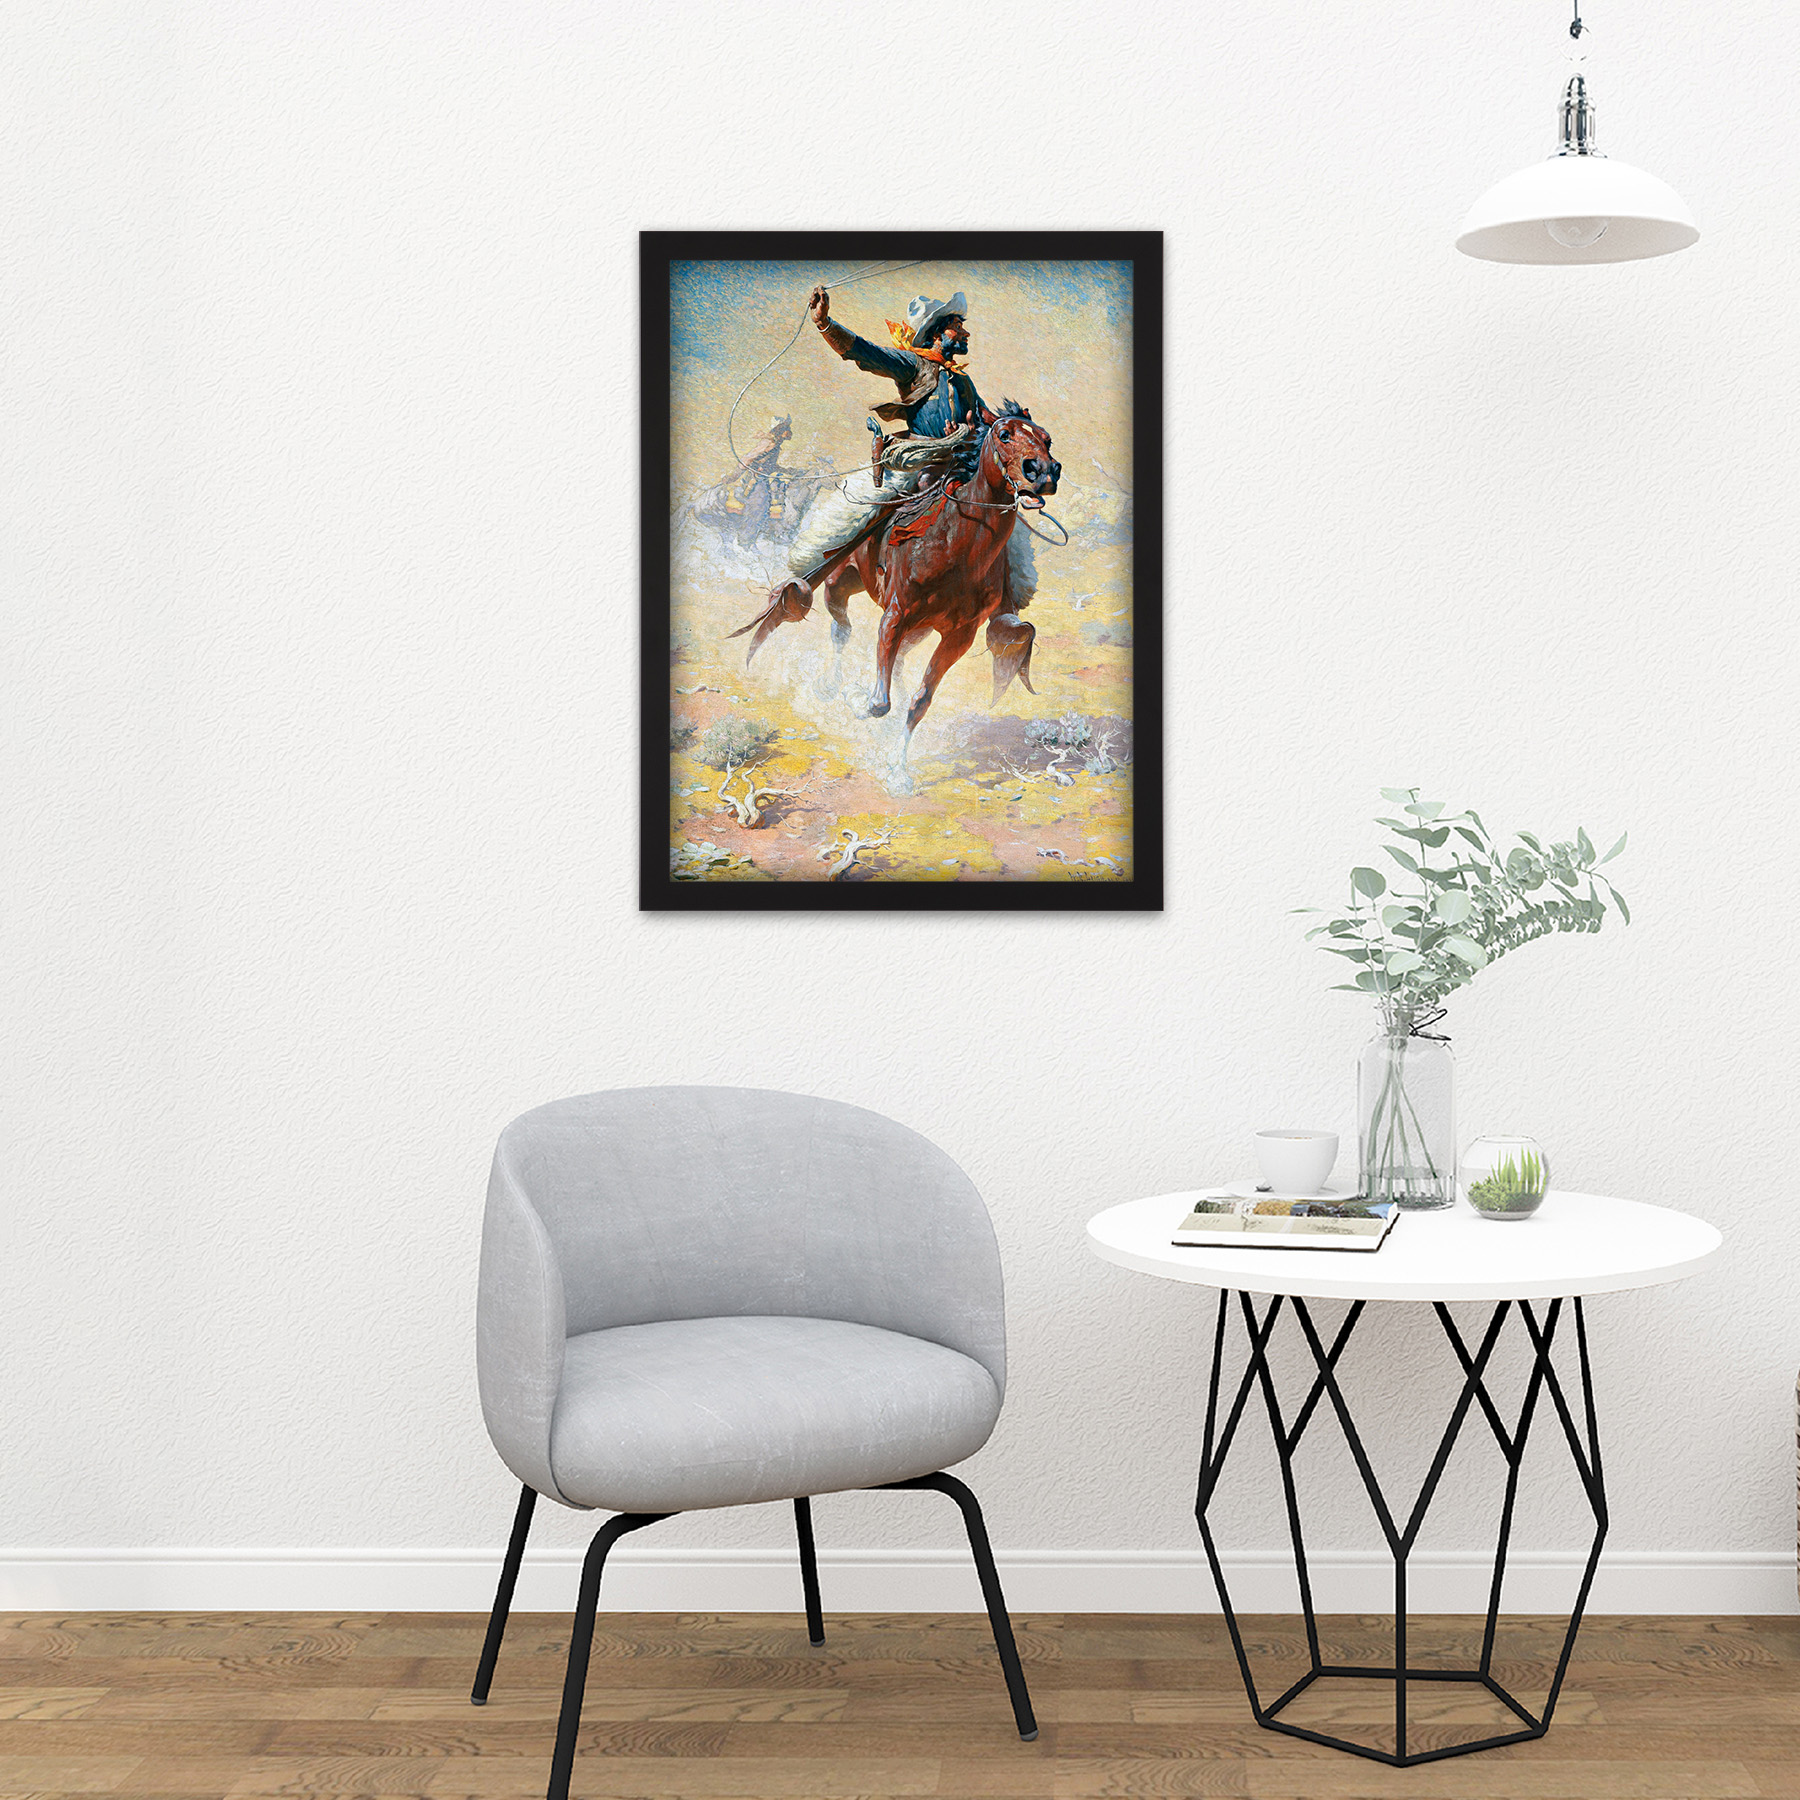 Leigh-The-Roping-Cowboy-Lasso-Horse-Painting-Large-Framed-Art-Print thumbnail 8